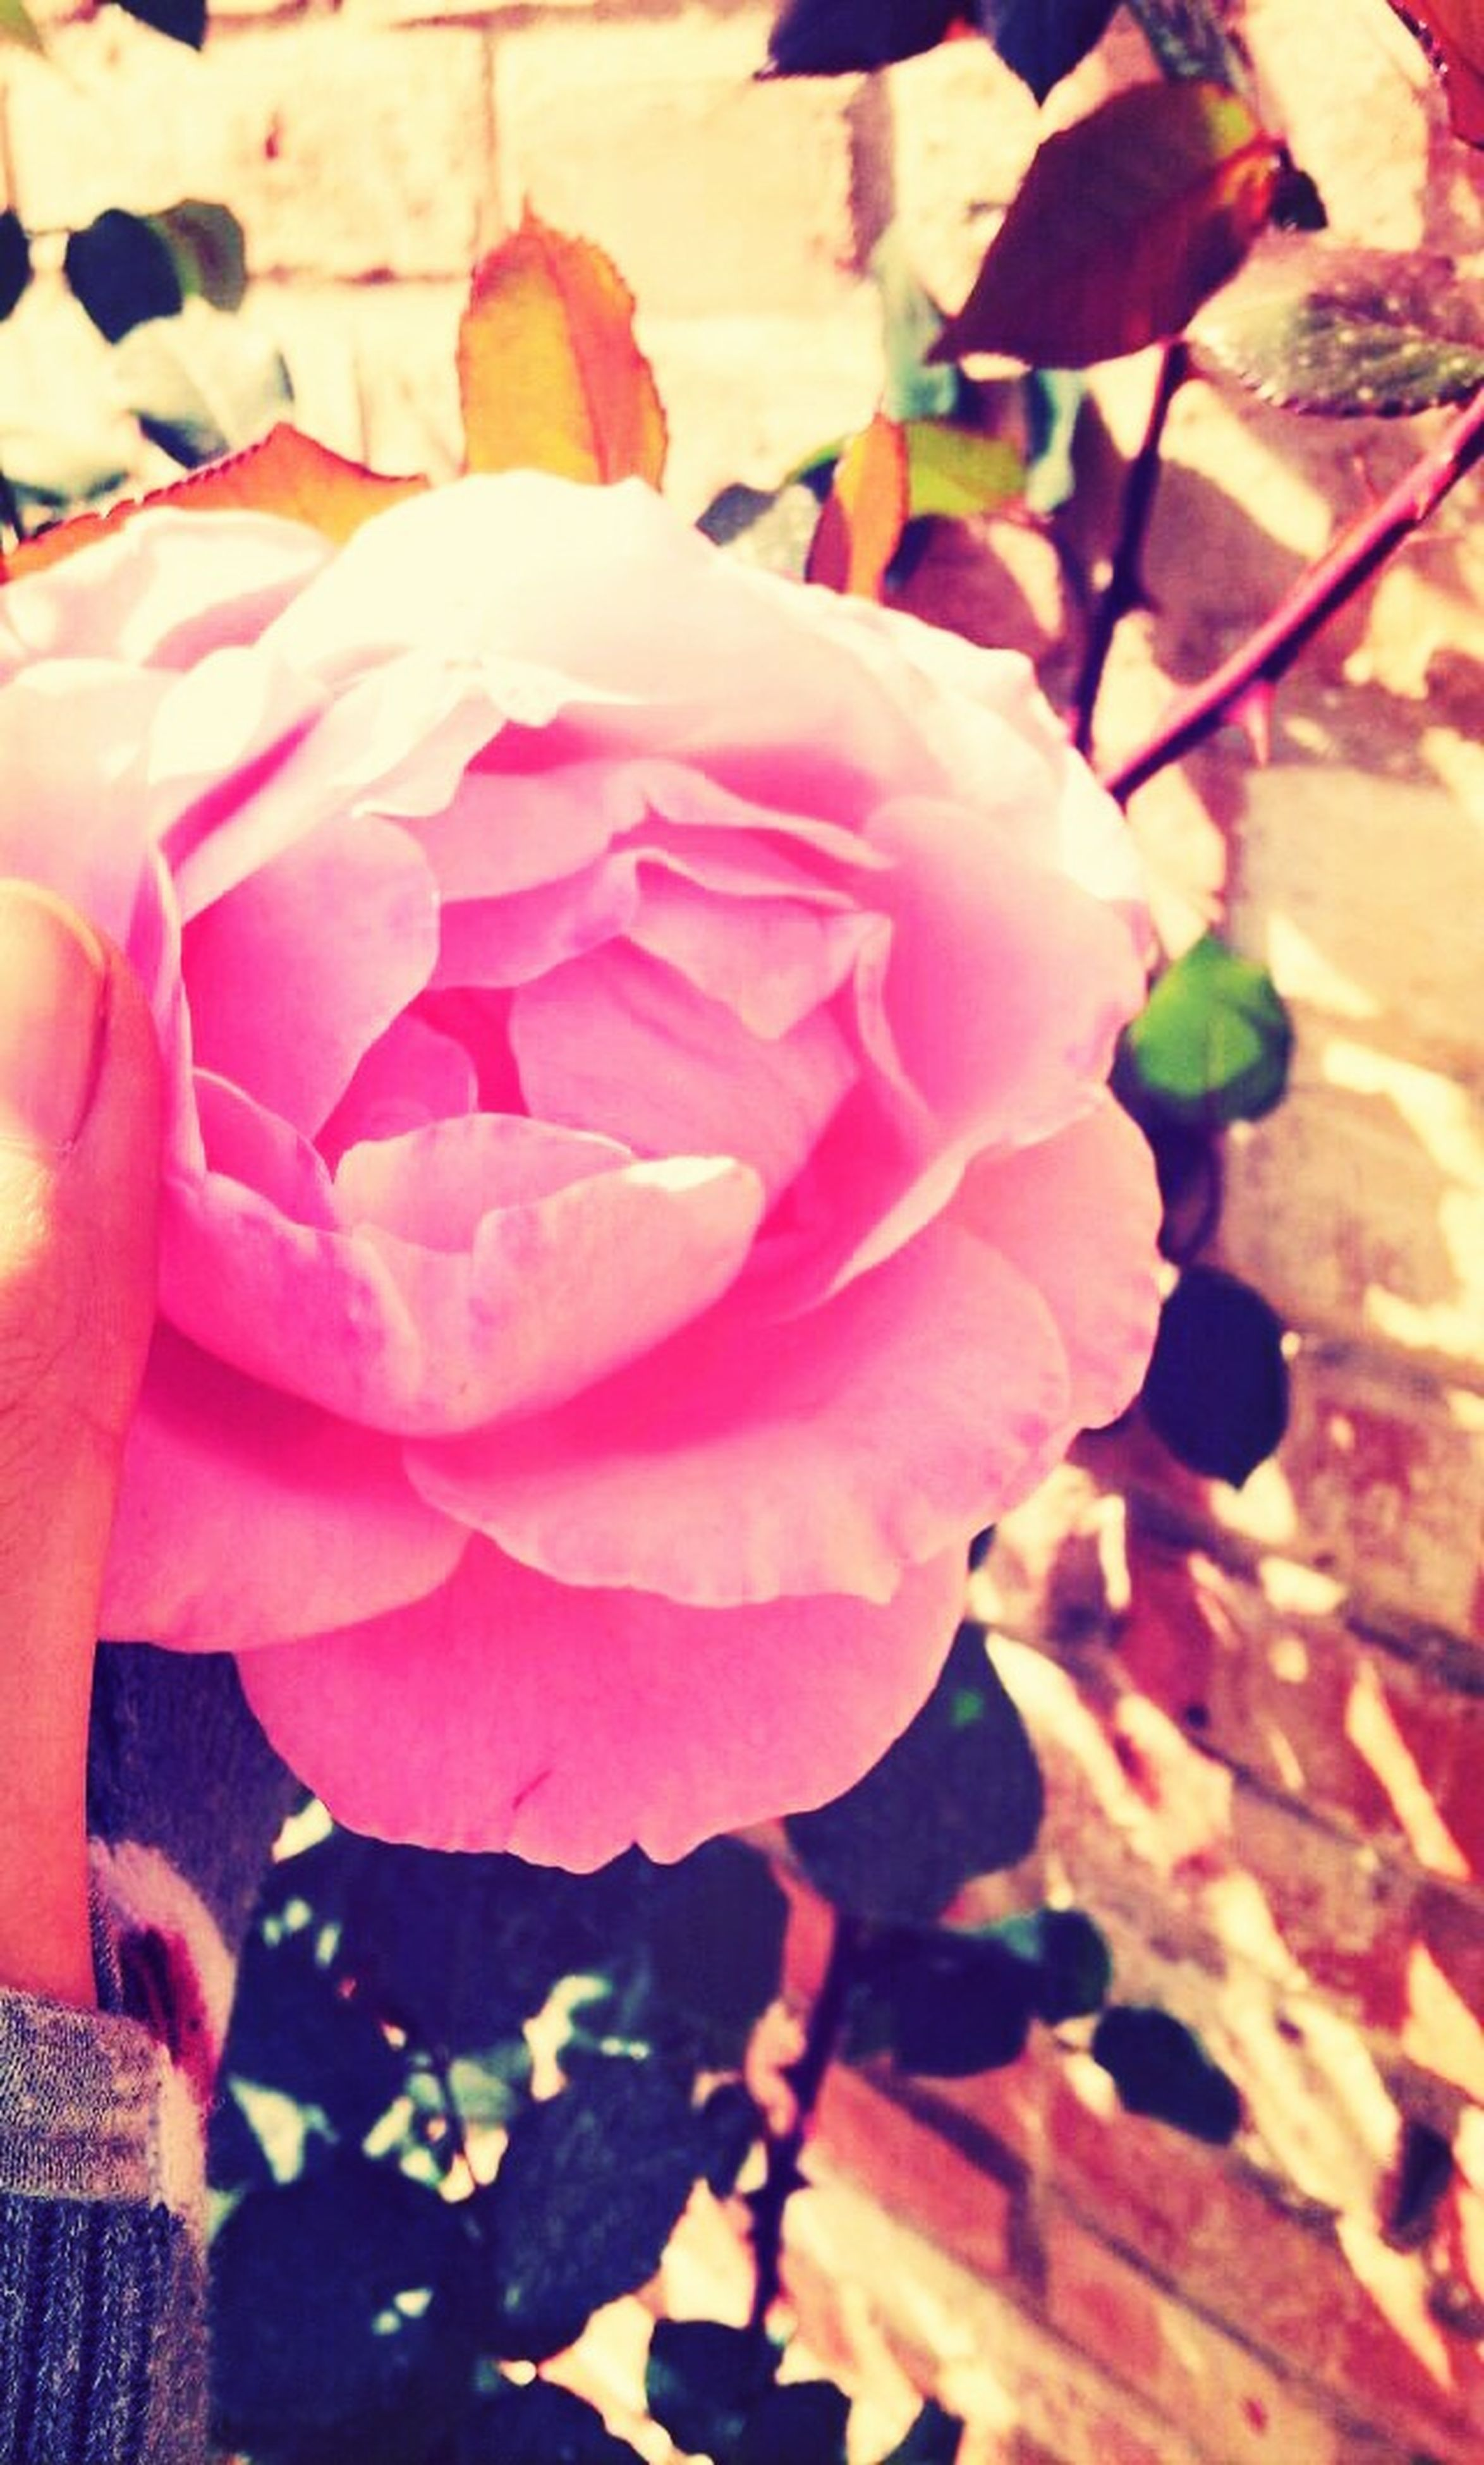 flower, pink color, petal, fragility, freshness, close-up, flower head, leaf, beauty in nature, nature, rose - flower, pink, growth, high angle view, outdoors, plant, day, focus on foreground, blooming, single flower